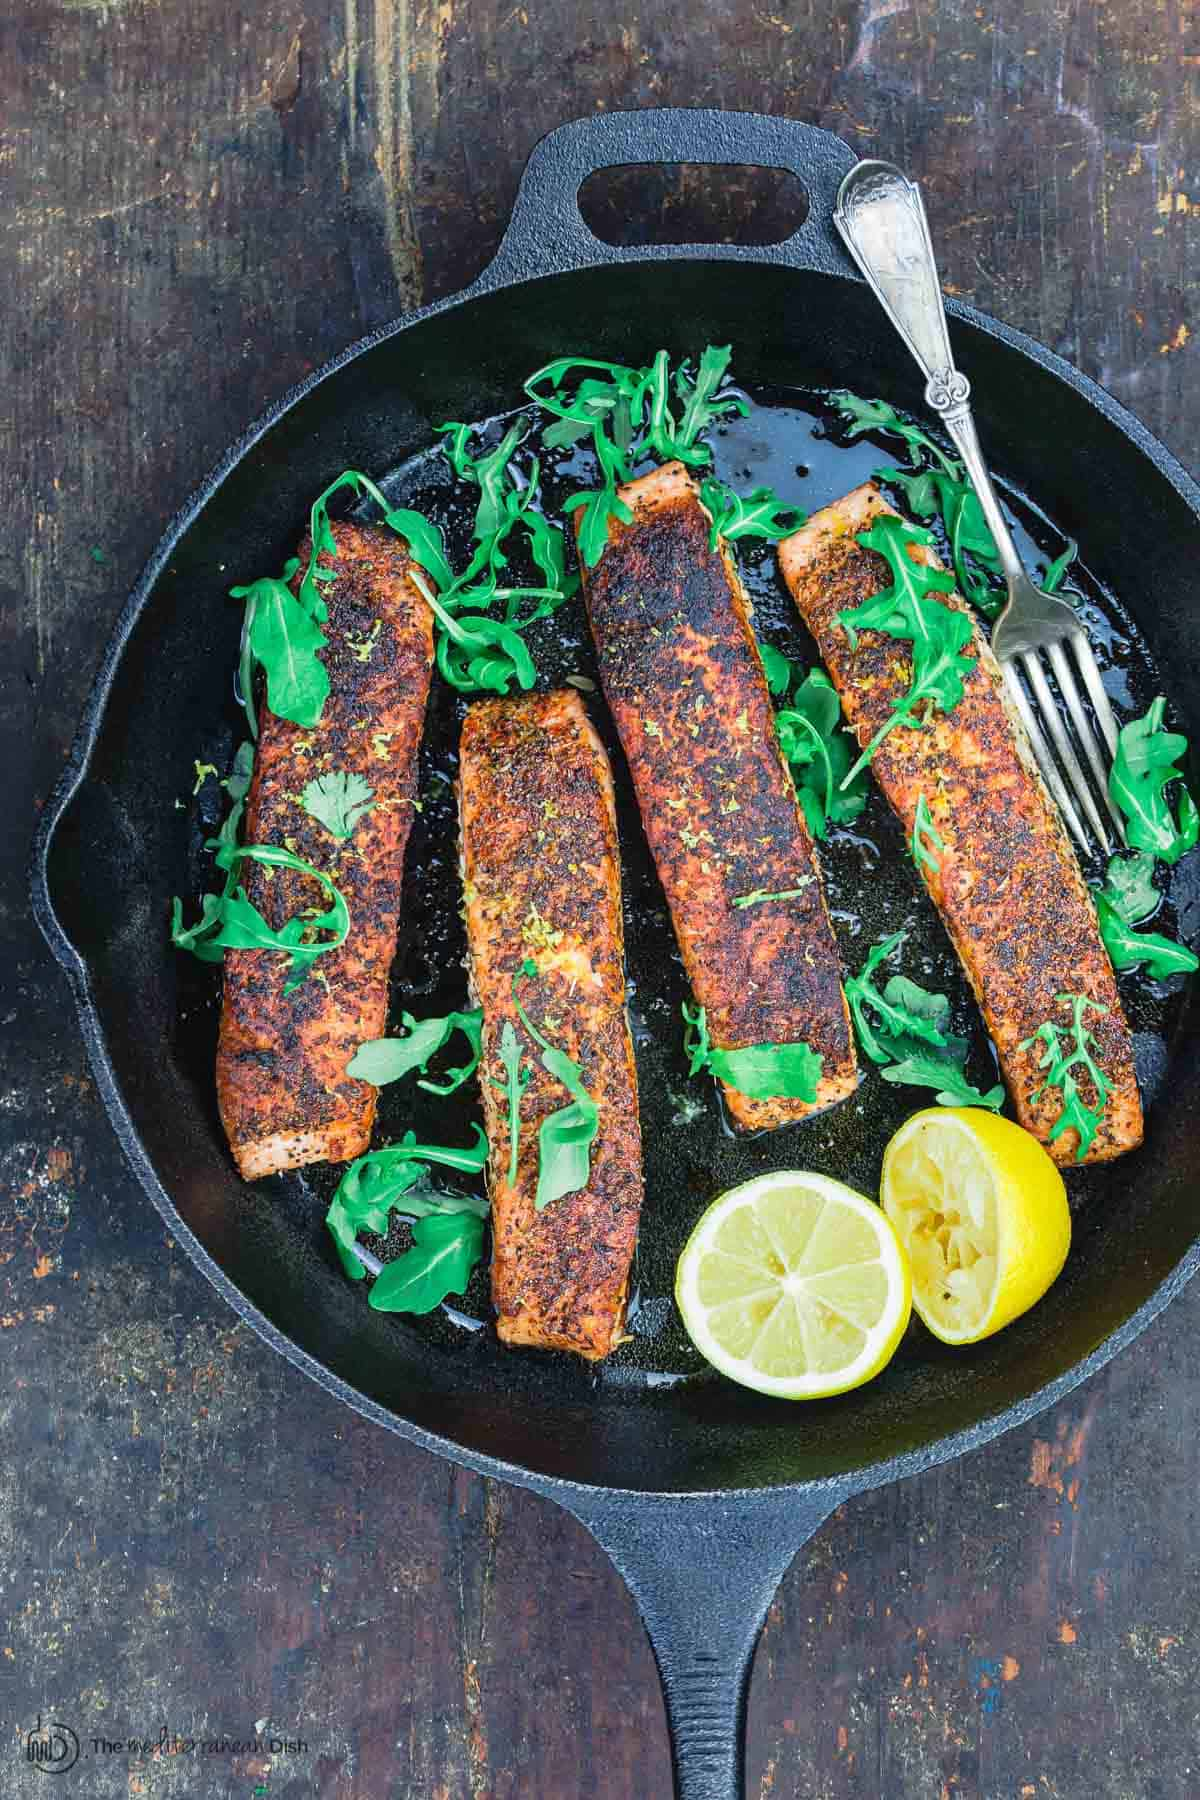 Crispy Pan Seared Salmon in Skillet